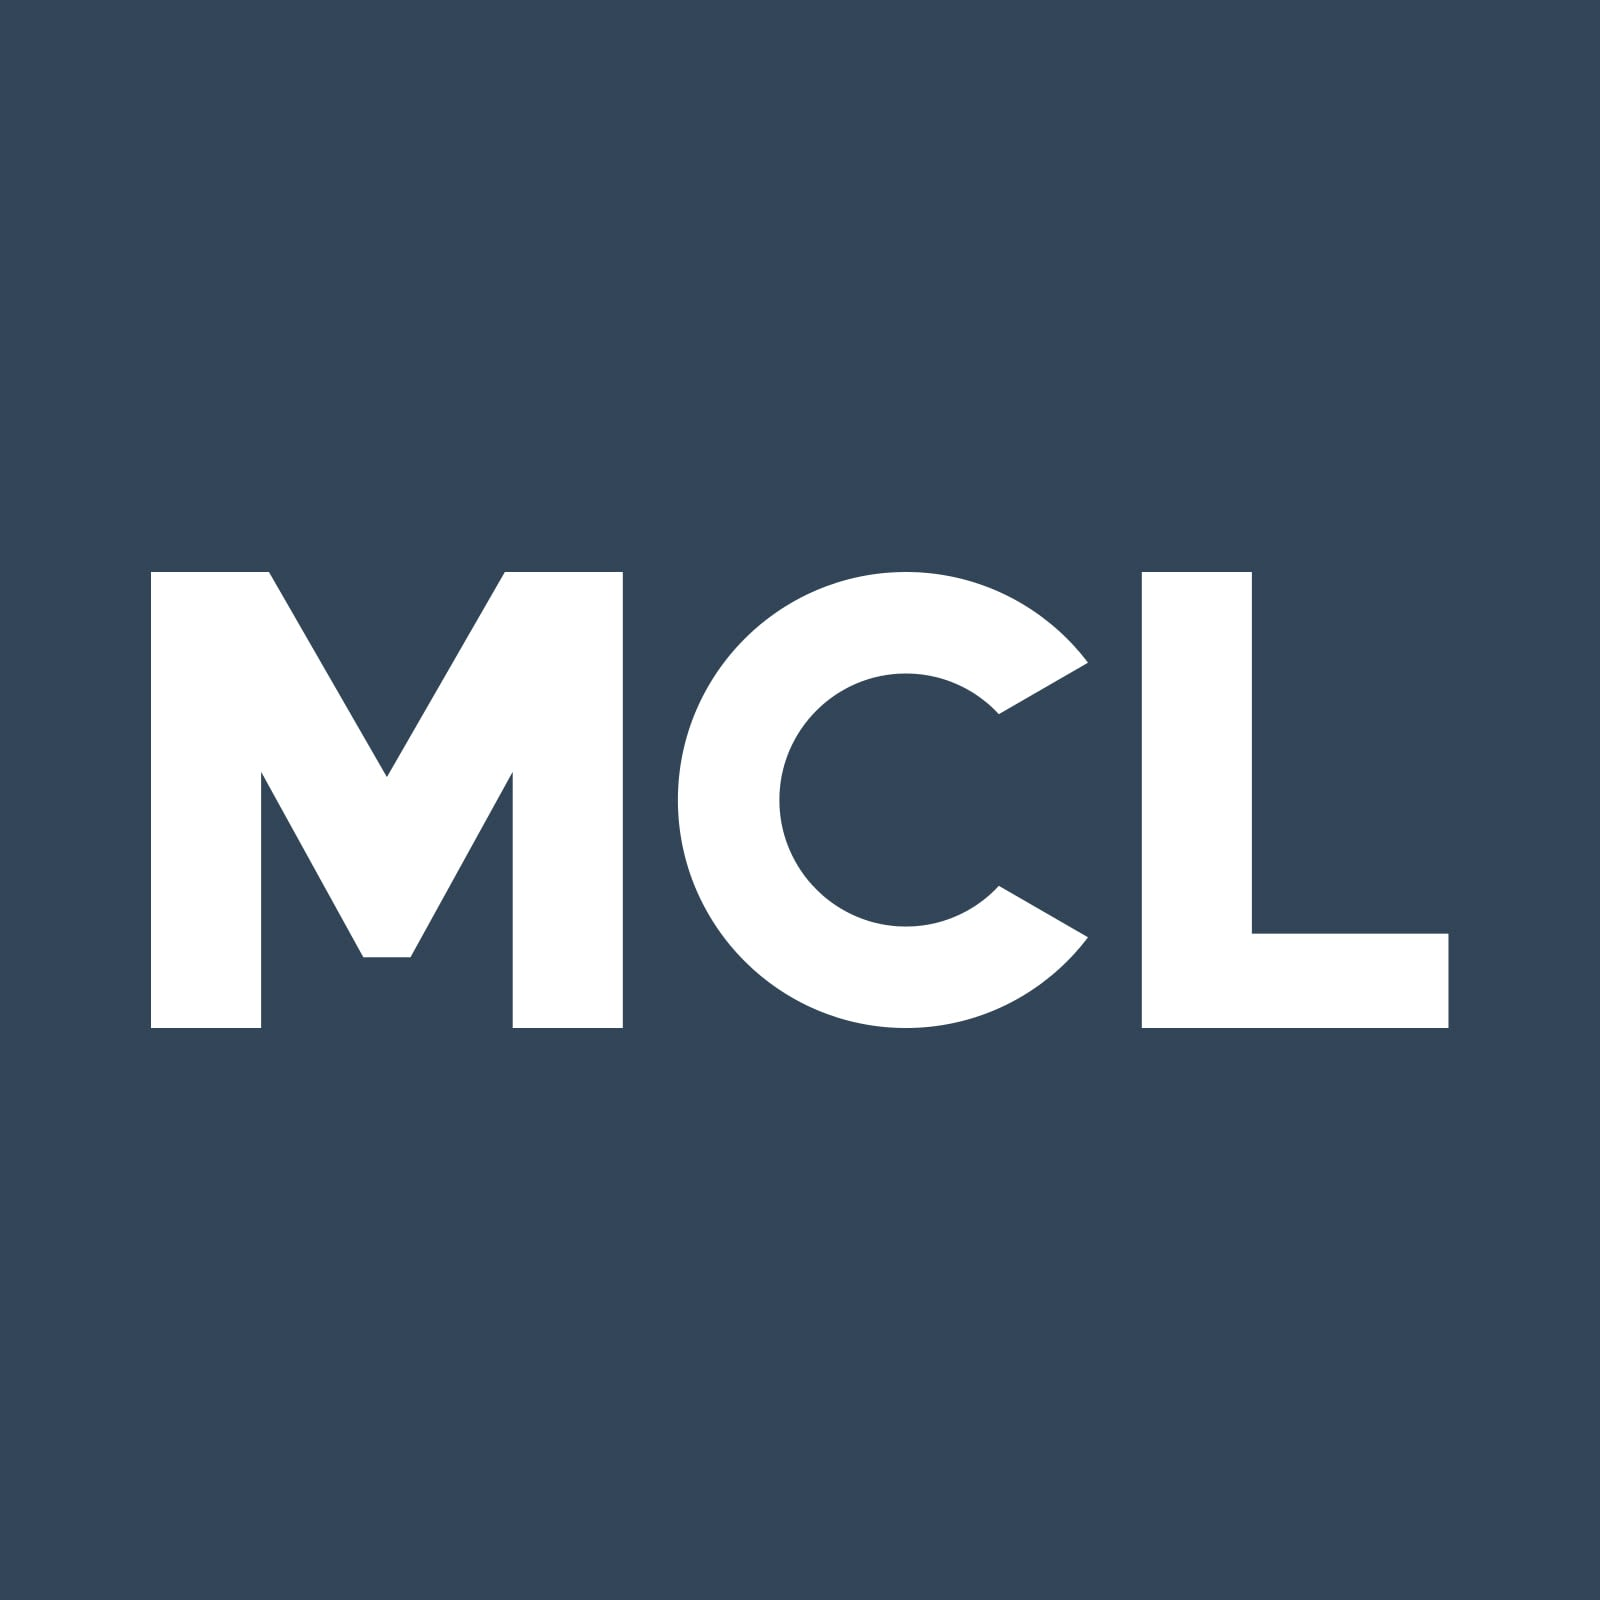 MCL Chartered Accountants Southend - Southend-On-Sea, Essex SS1 3RP - 01702 593029 | ShowMeLocal.com